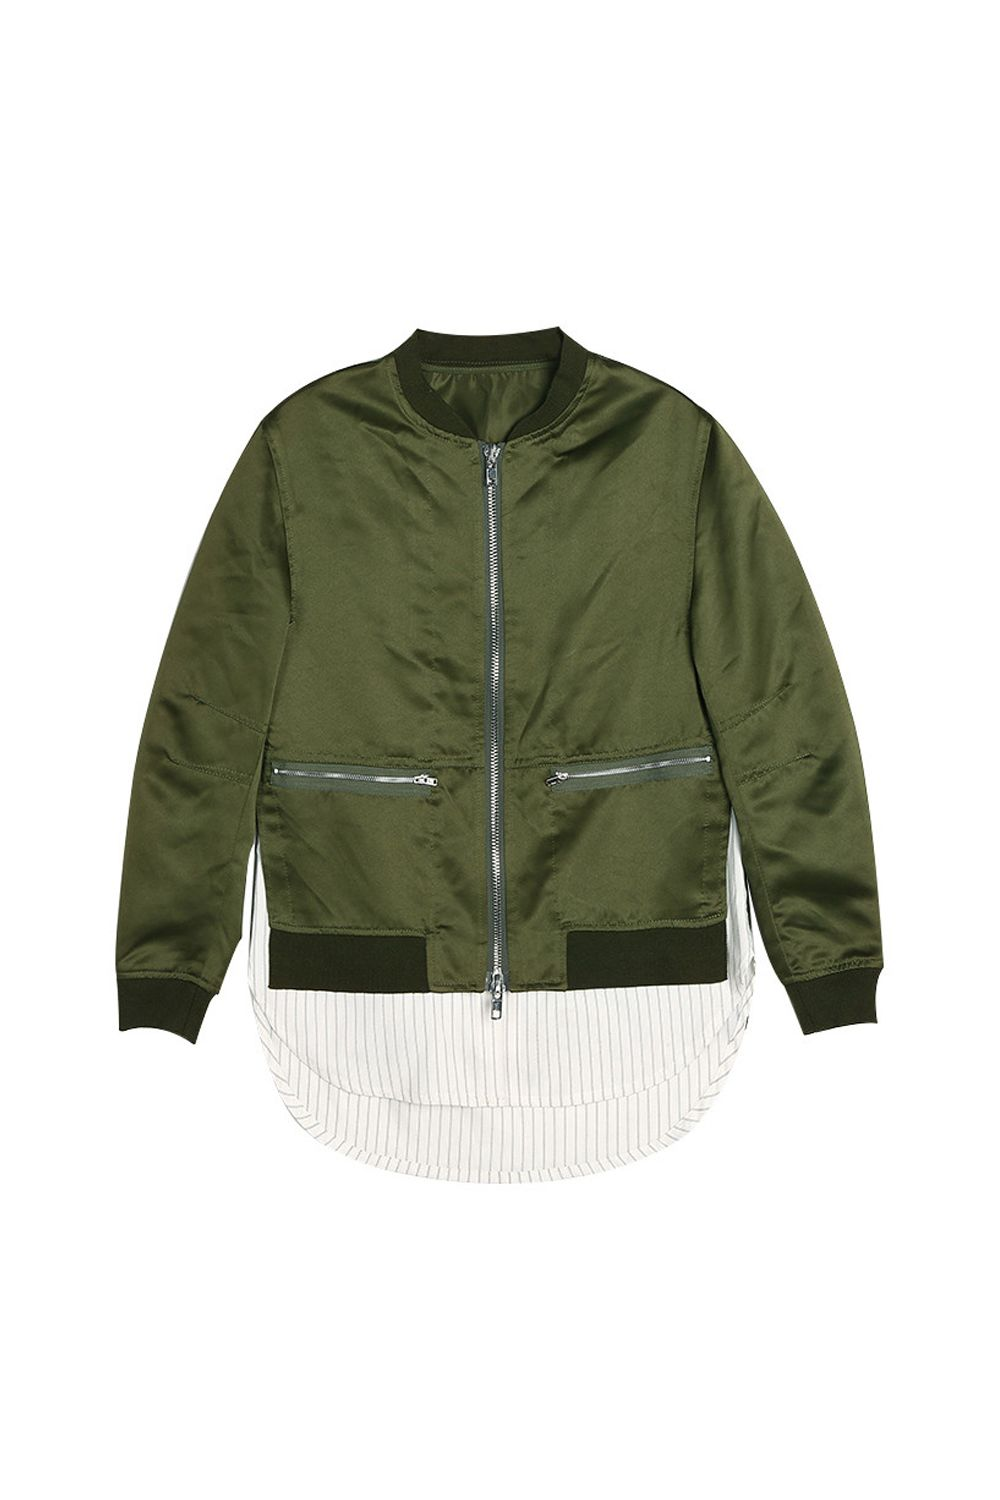 """<p>Has a shirttail attached so you don't need to wear one!</p><p>$95, <a href=""""https://genuine-people.com/collections/jackets-coats/products/silky-shirt-bomber-jacket?variant=27148285065"""" target=""""_blank"""" data-tracking-id=""""recirc-text-link"""">genuine-people.com</a>.</p>"""